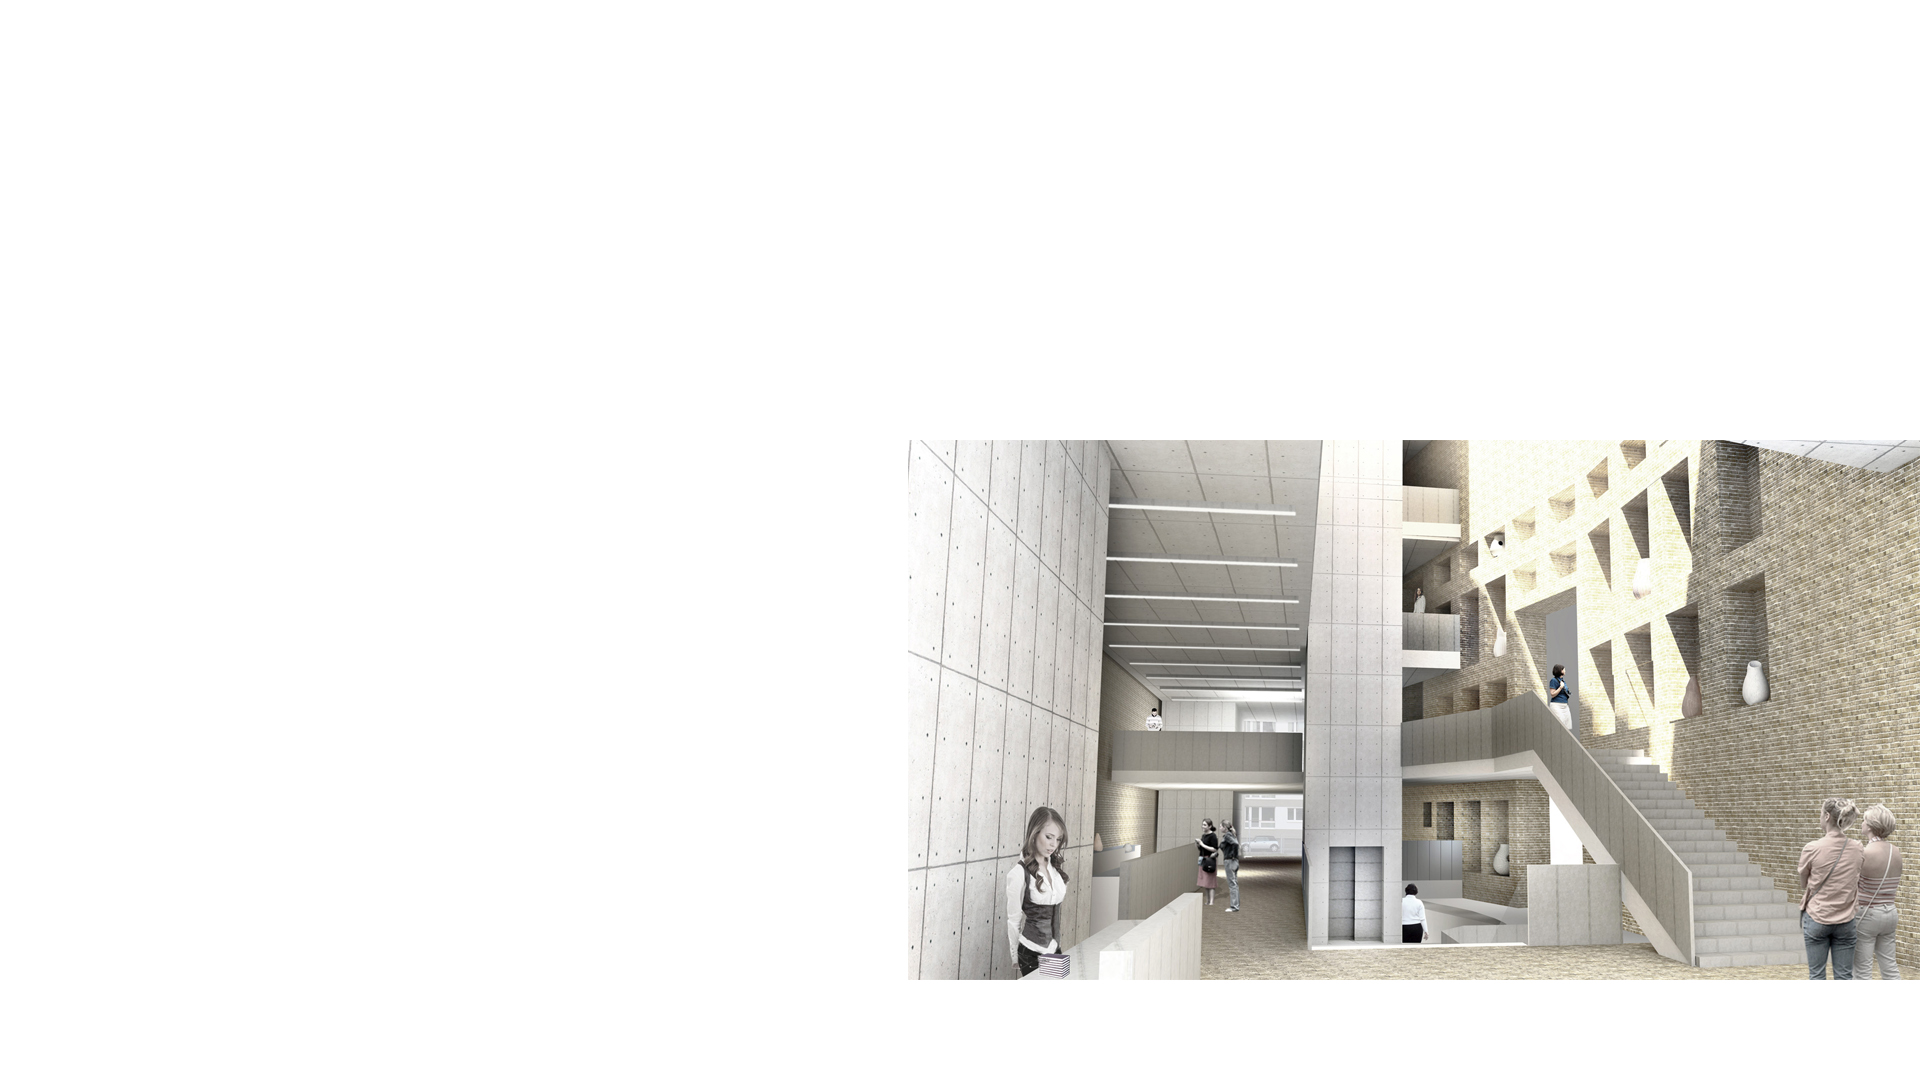 Composite rendering of the interior main hall of the Museum and Centre for Conservation Studies Petriplatz Berlin